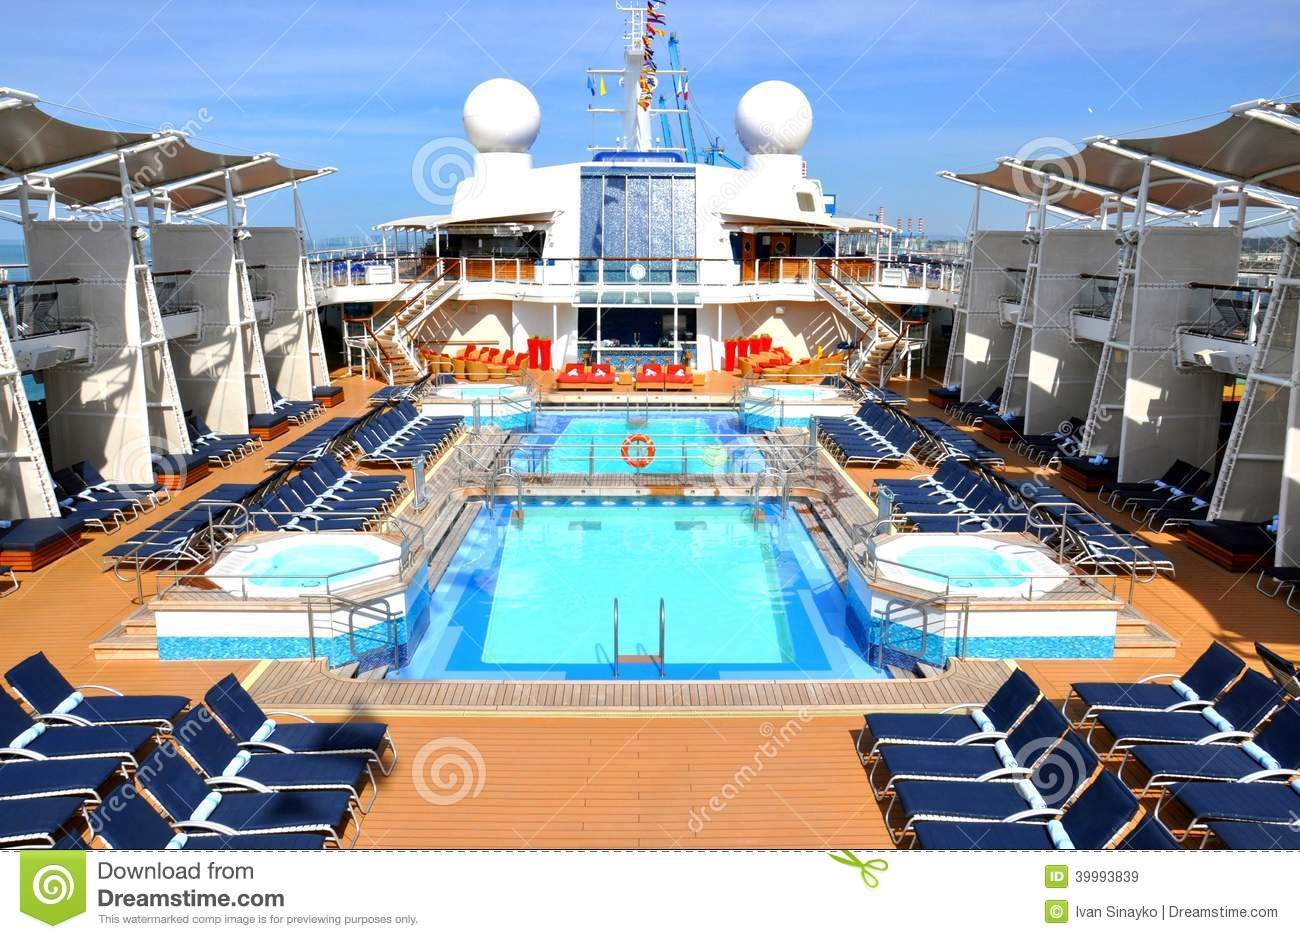 Celebrity Reflection 2019/2020 - Save up to -36% - Dreamlines